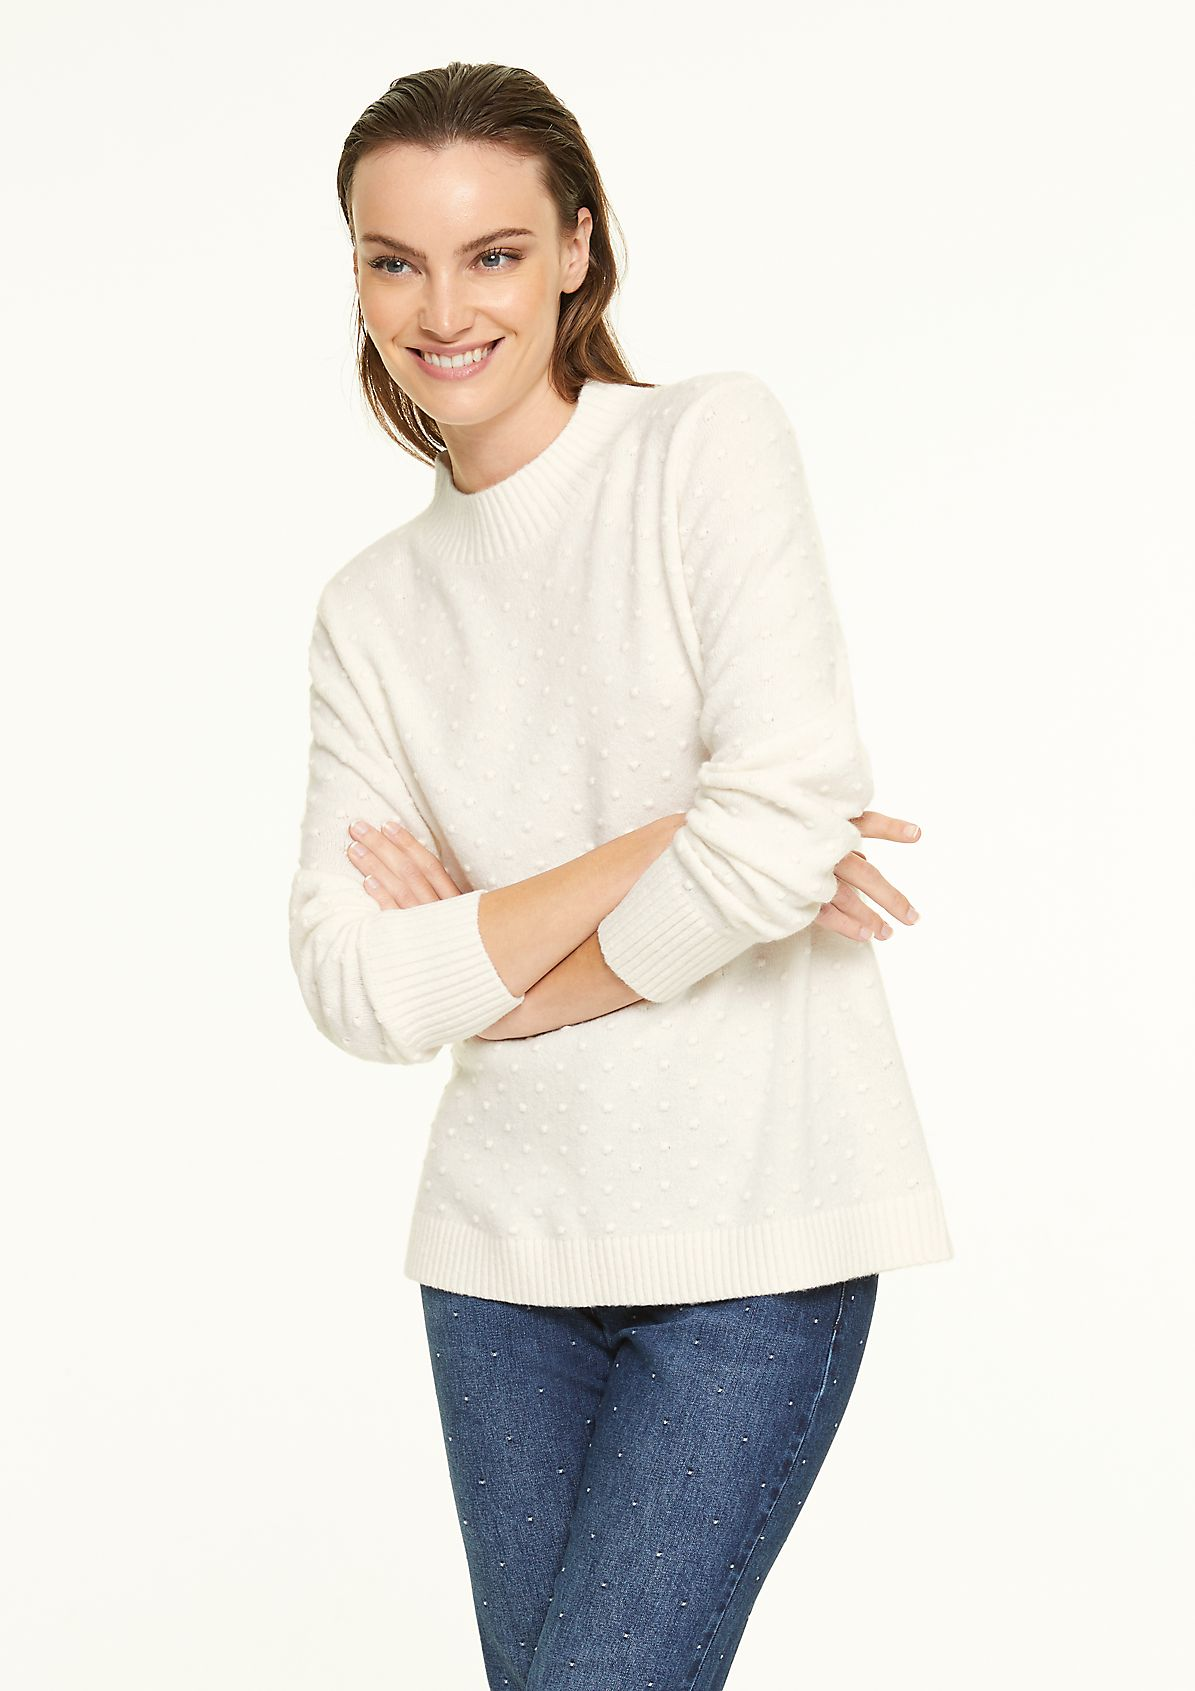 High-neck jumper with textured pattern from comma